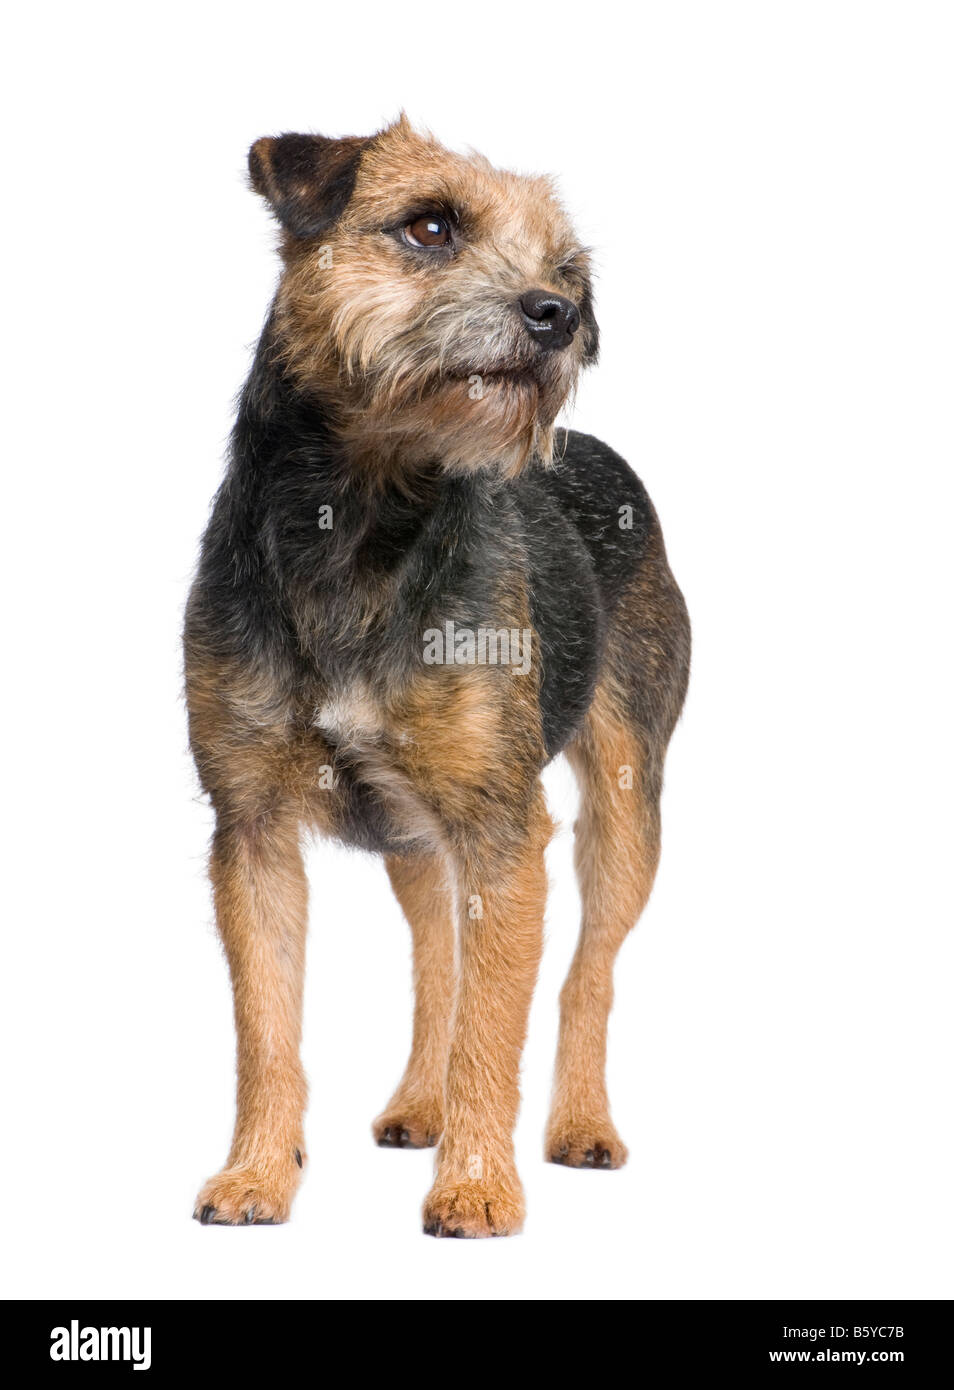 Border terrier in front of a white background - Stock Image